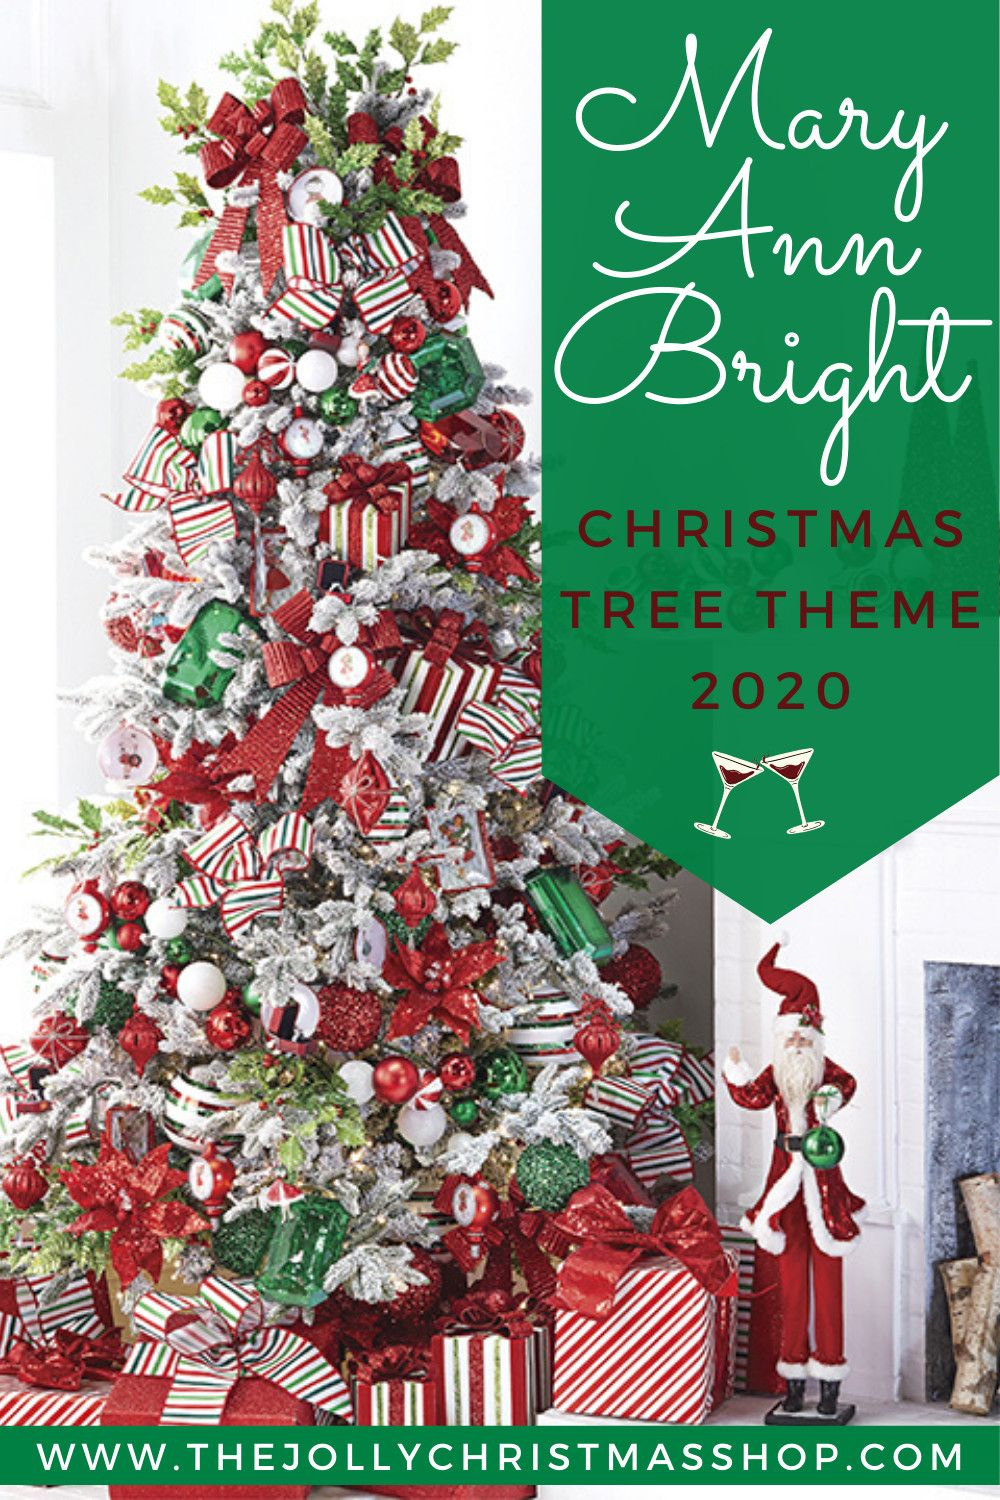 New For 2020 Mary Ann Bright Christmas Tree Theme Make The Spirits Bright This Hol In 2020 Floral Christmas Tree Christmas Tree Inspiration Cool Christmas Trees